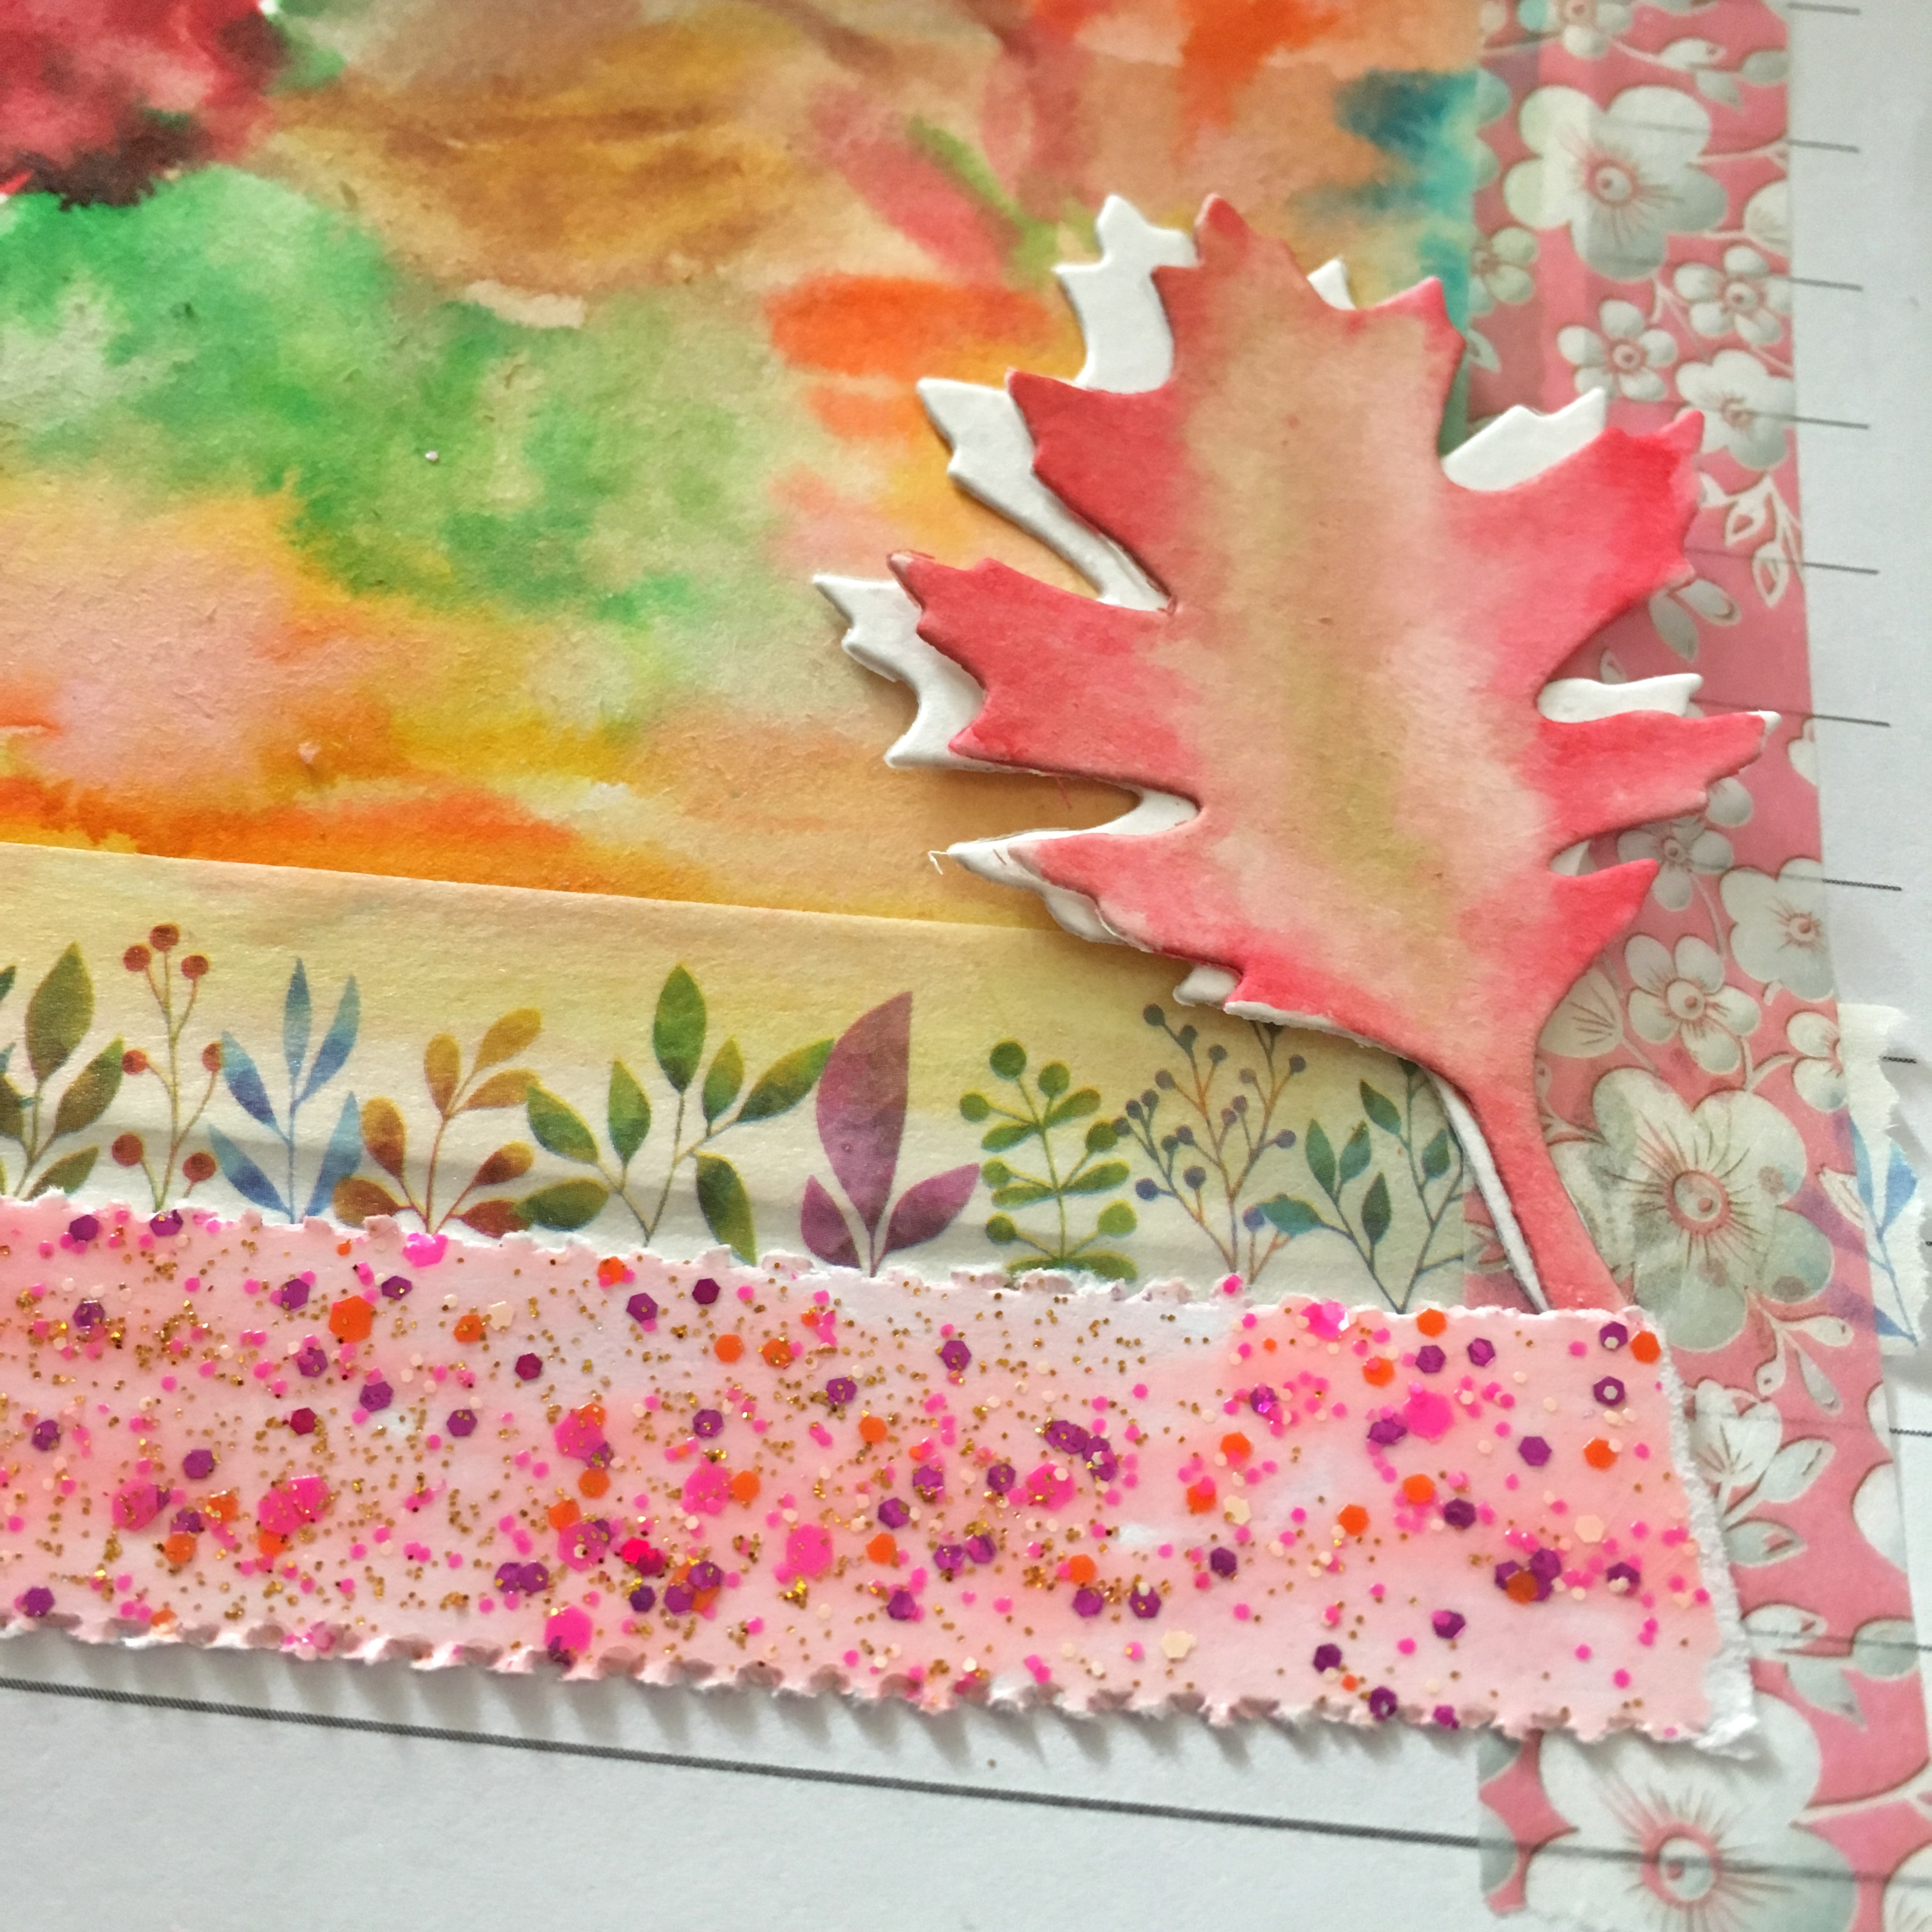 pink Autumn leaf and the glitter washi tape from the previous picture